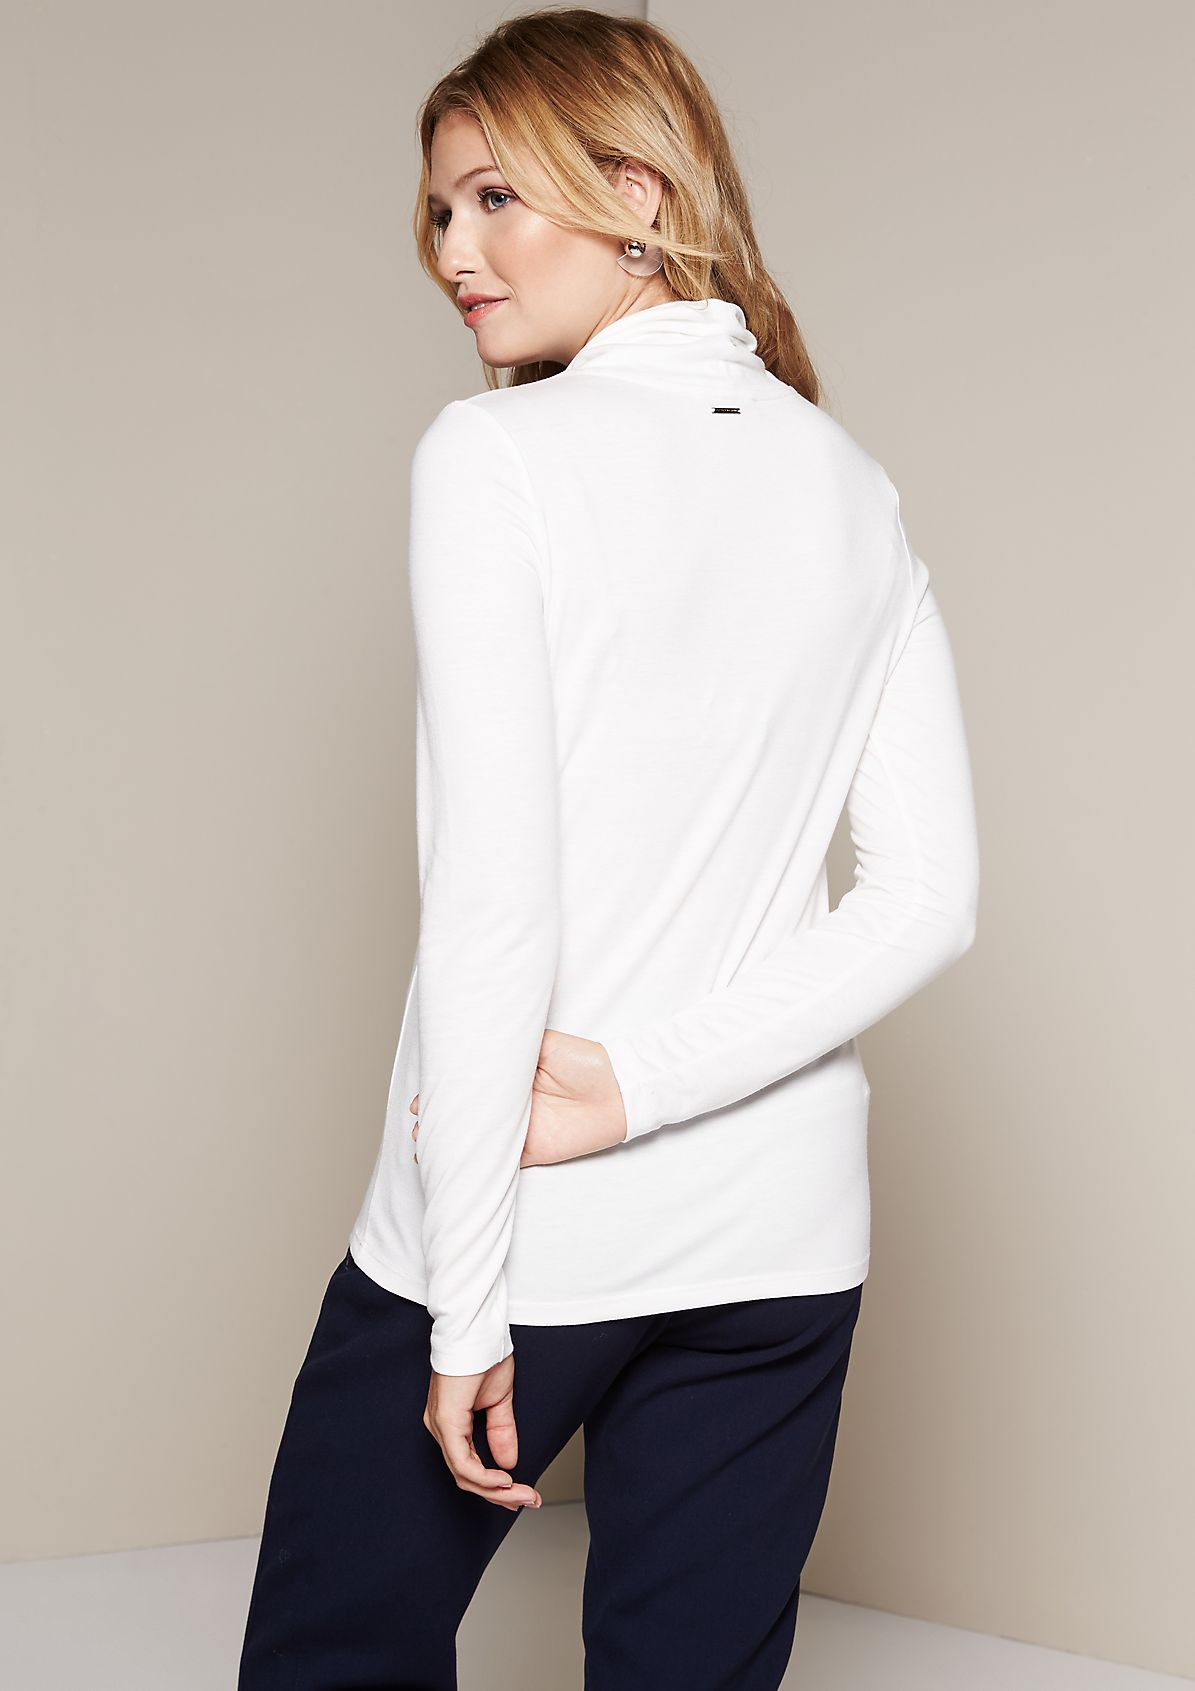 Casual long sleeve jersey top with a high roll neck collar from s.Oliver